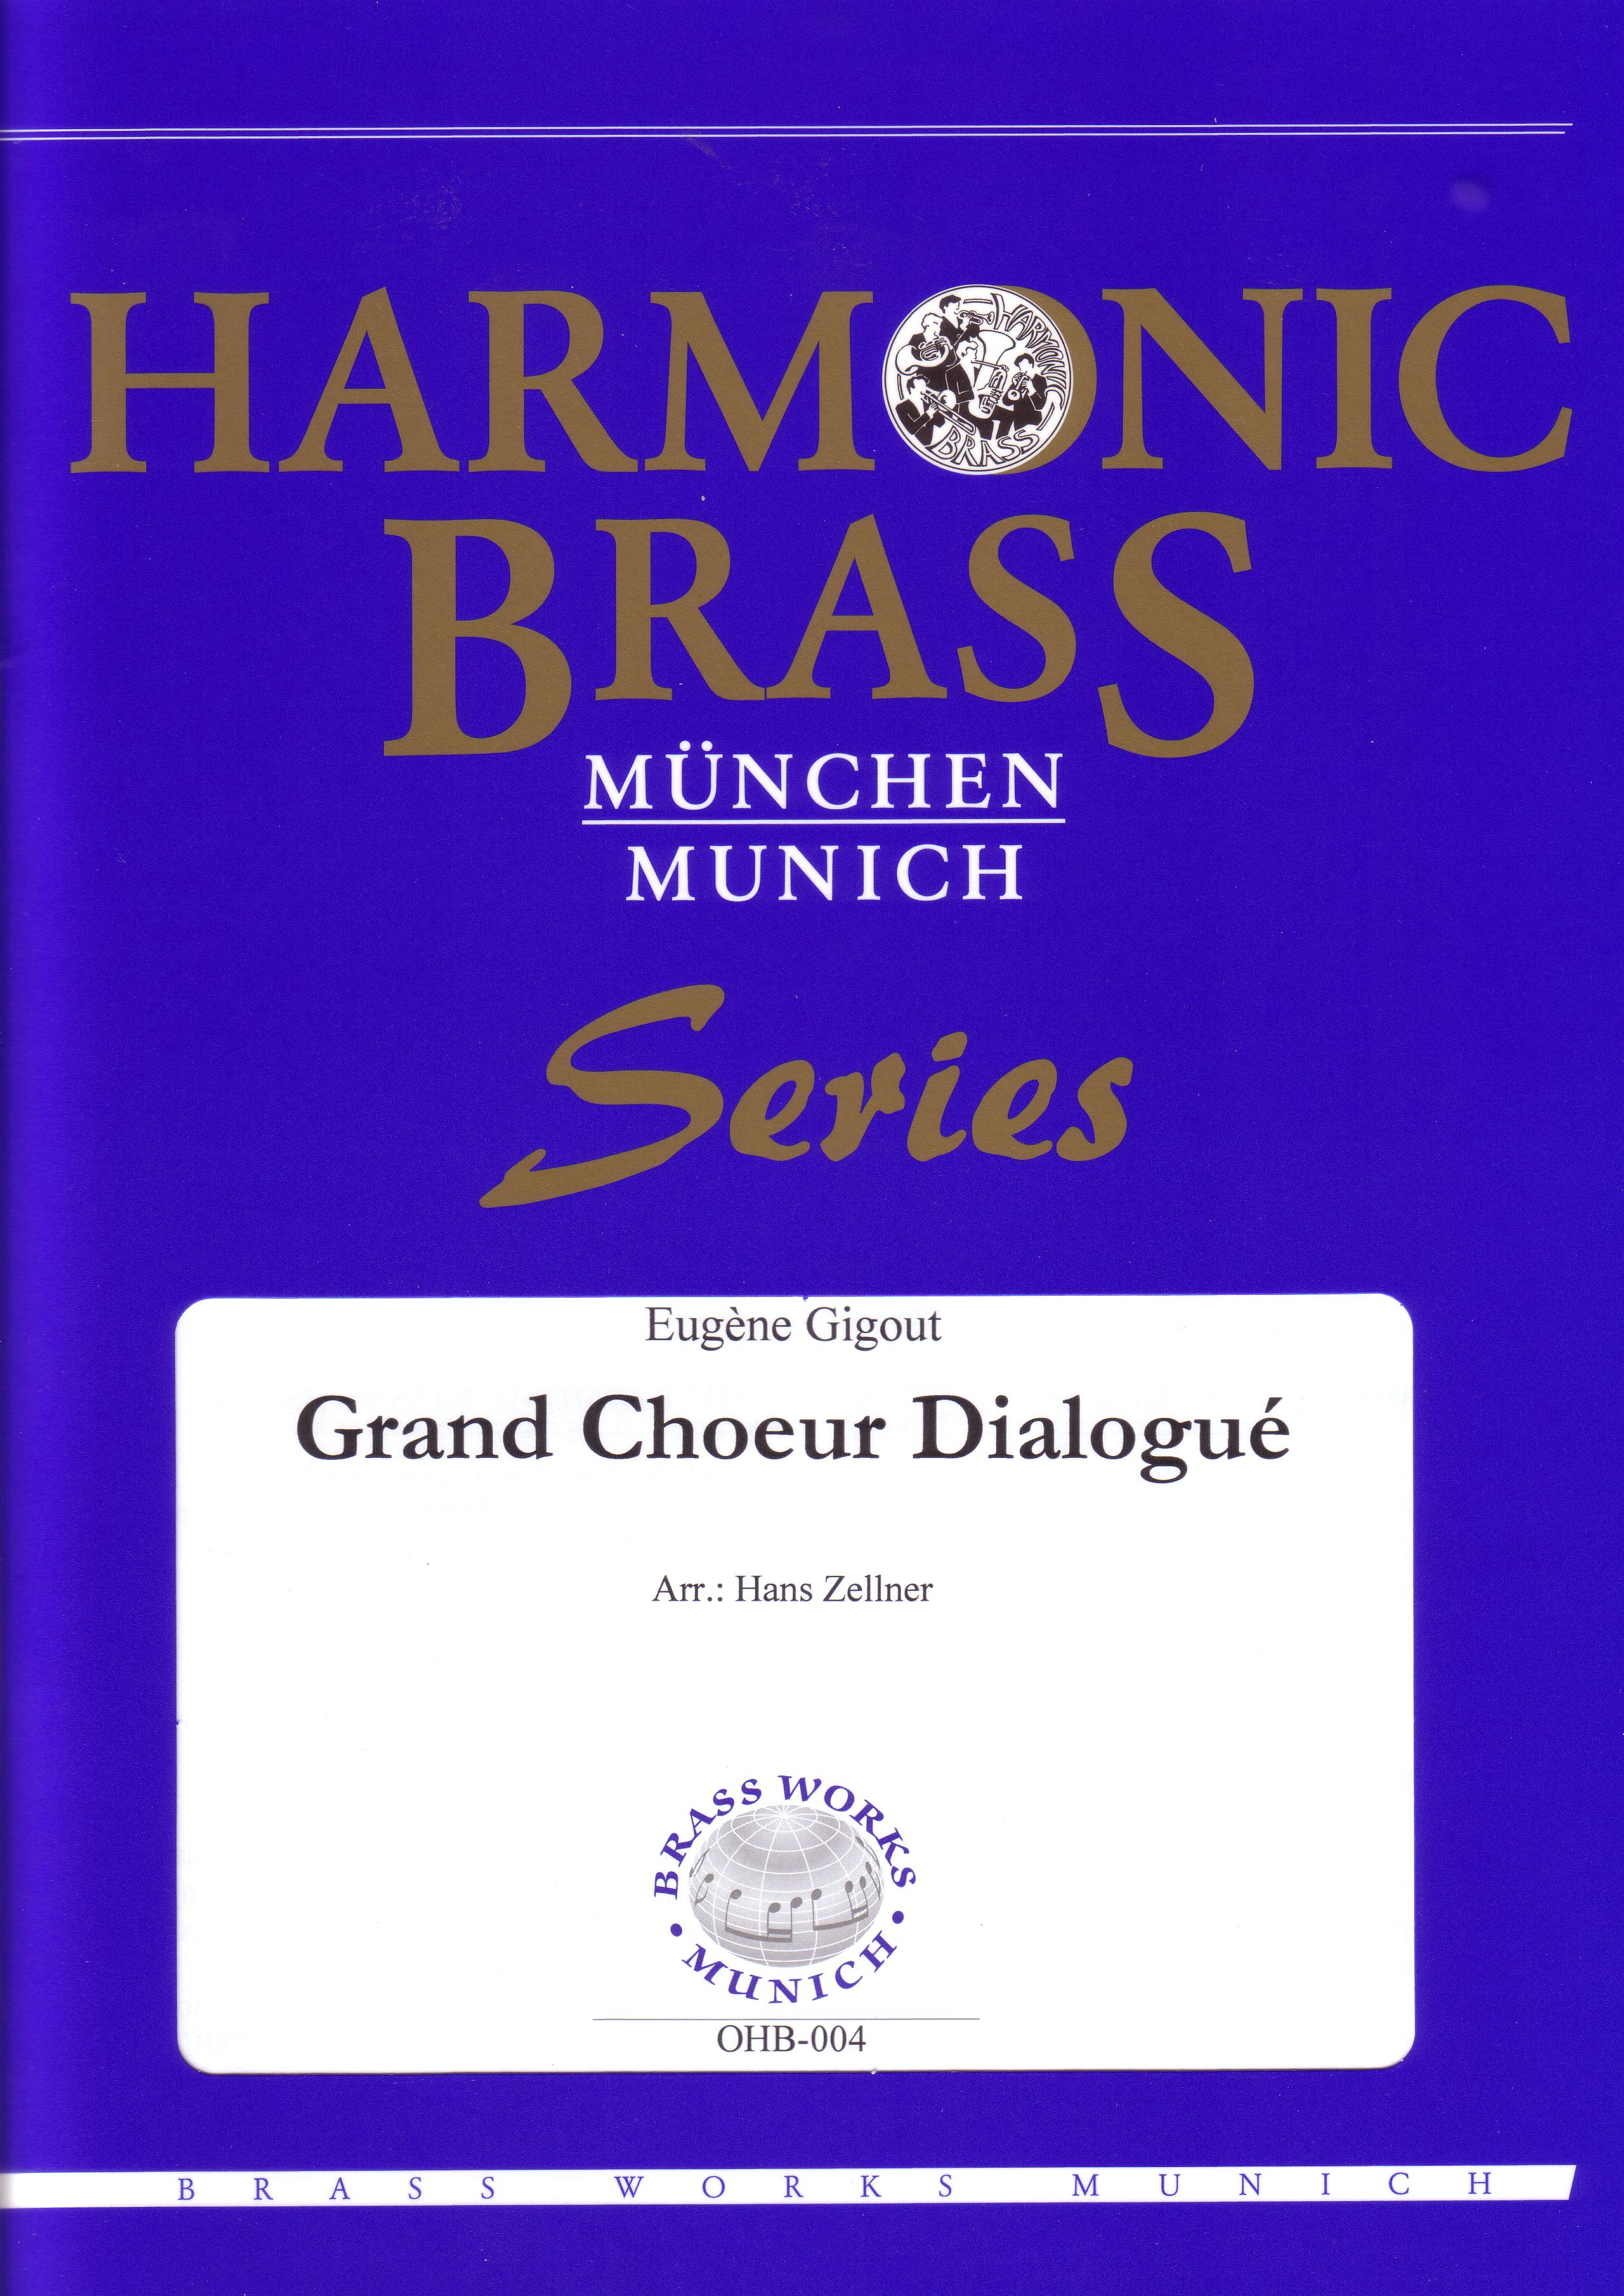 GRAND CHOEUR DIALOGUE